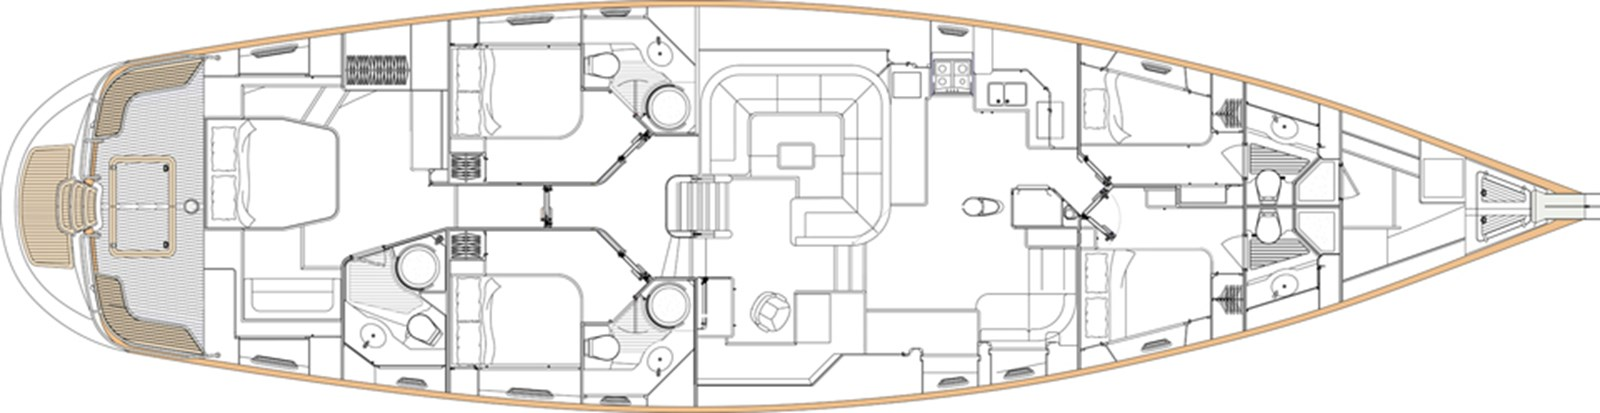 oyster-82-layout-1 2009 OYSTER MARINE LTD Oyster 82 Cruising Sailboat 2806239